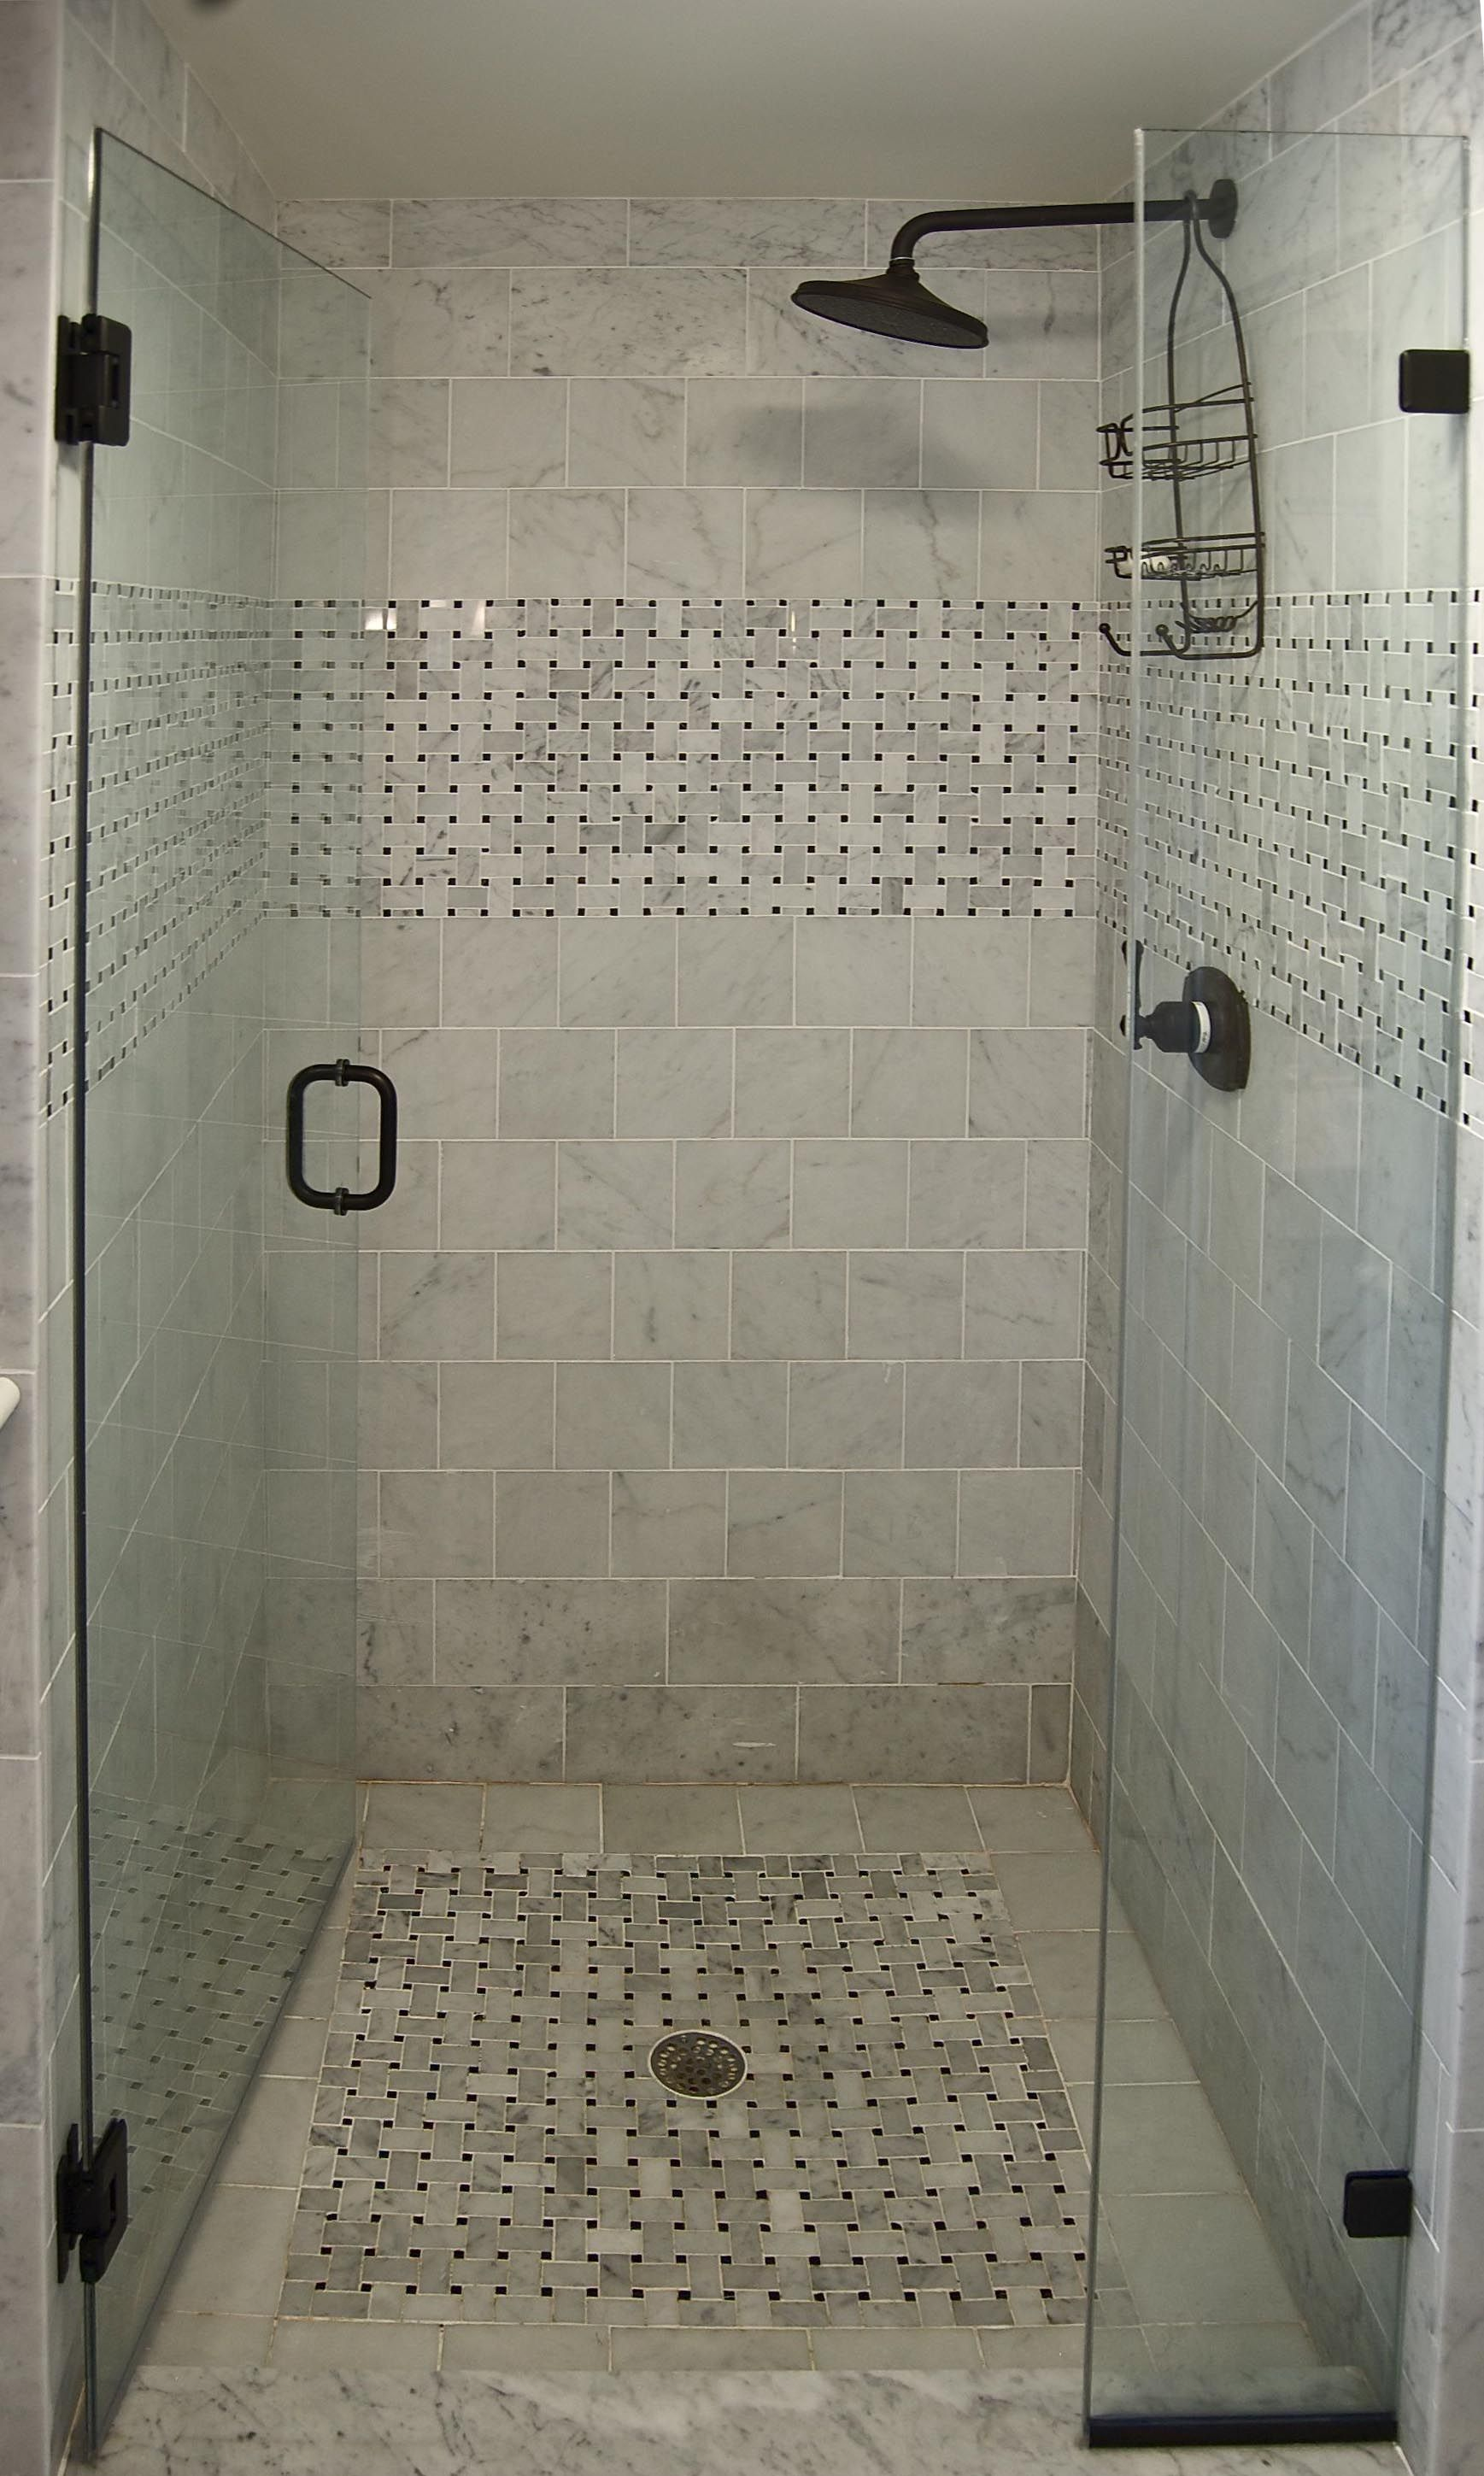 Small Shower Basket Weave Strip Rainshower Head Single Dial Control Bathroom Shower Stalls Bathroom Shower Tile Shower Remodel